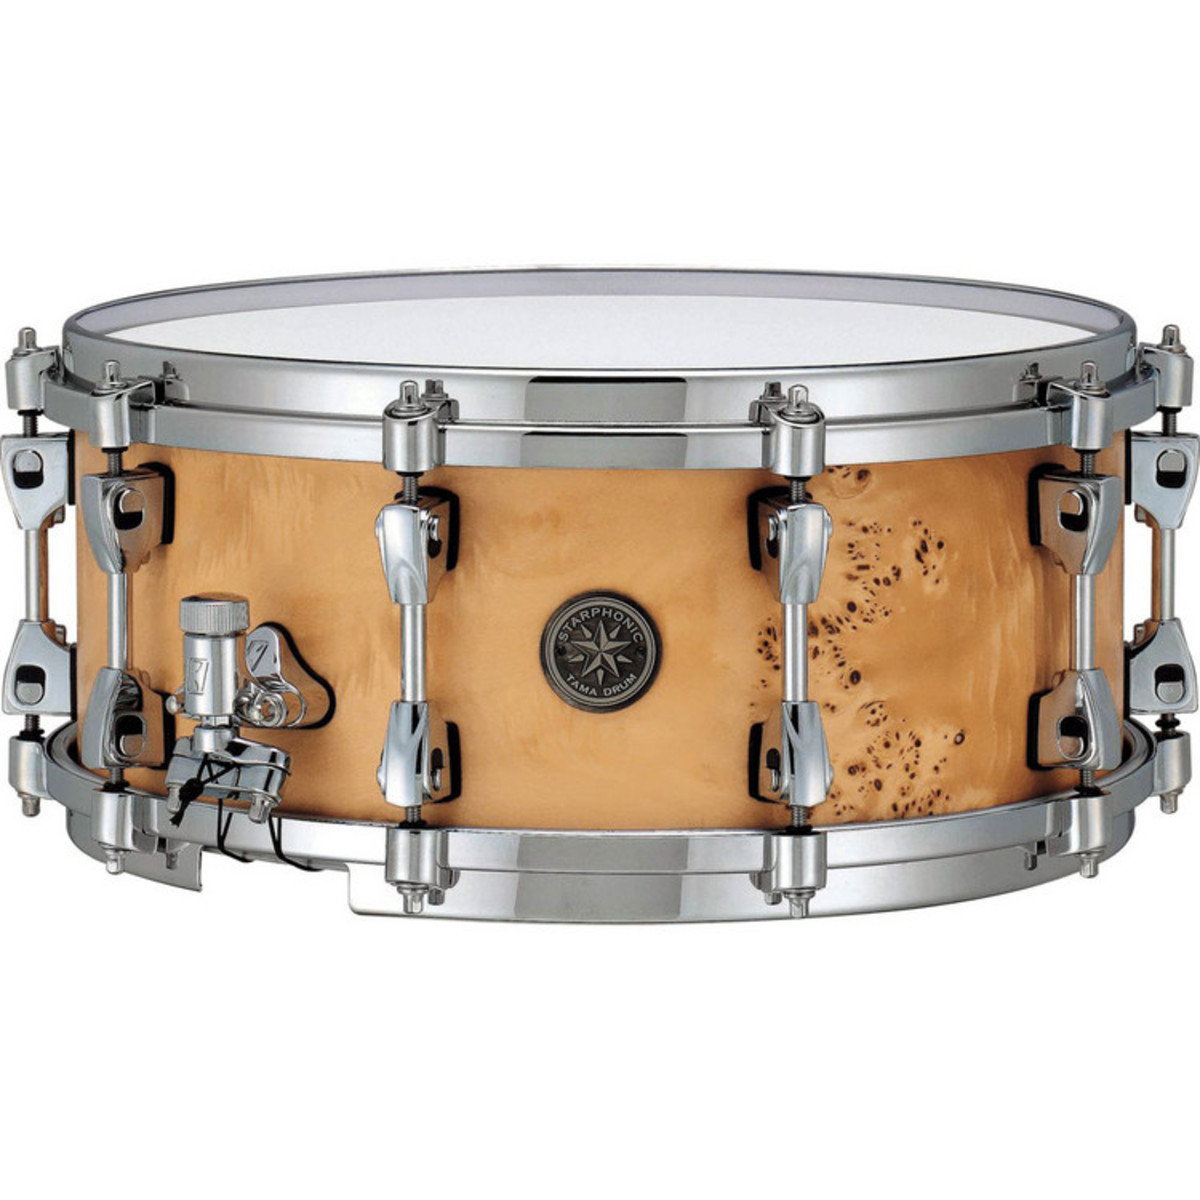 tama starphonic 14 39 39 x 6 39 39 pmm146 stm snare drum maple b stock at gear4music. Black Bedroom Furniture Sets. Home Design Ideas